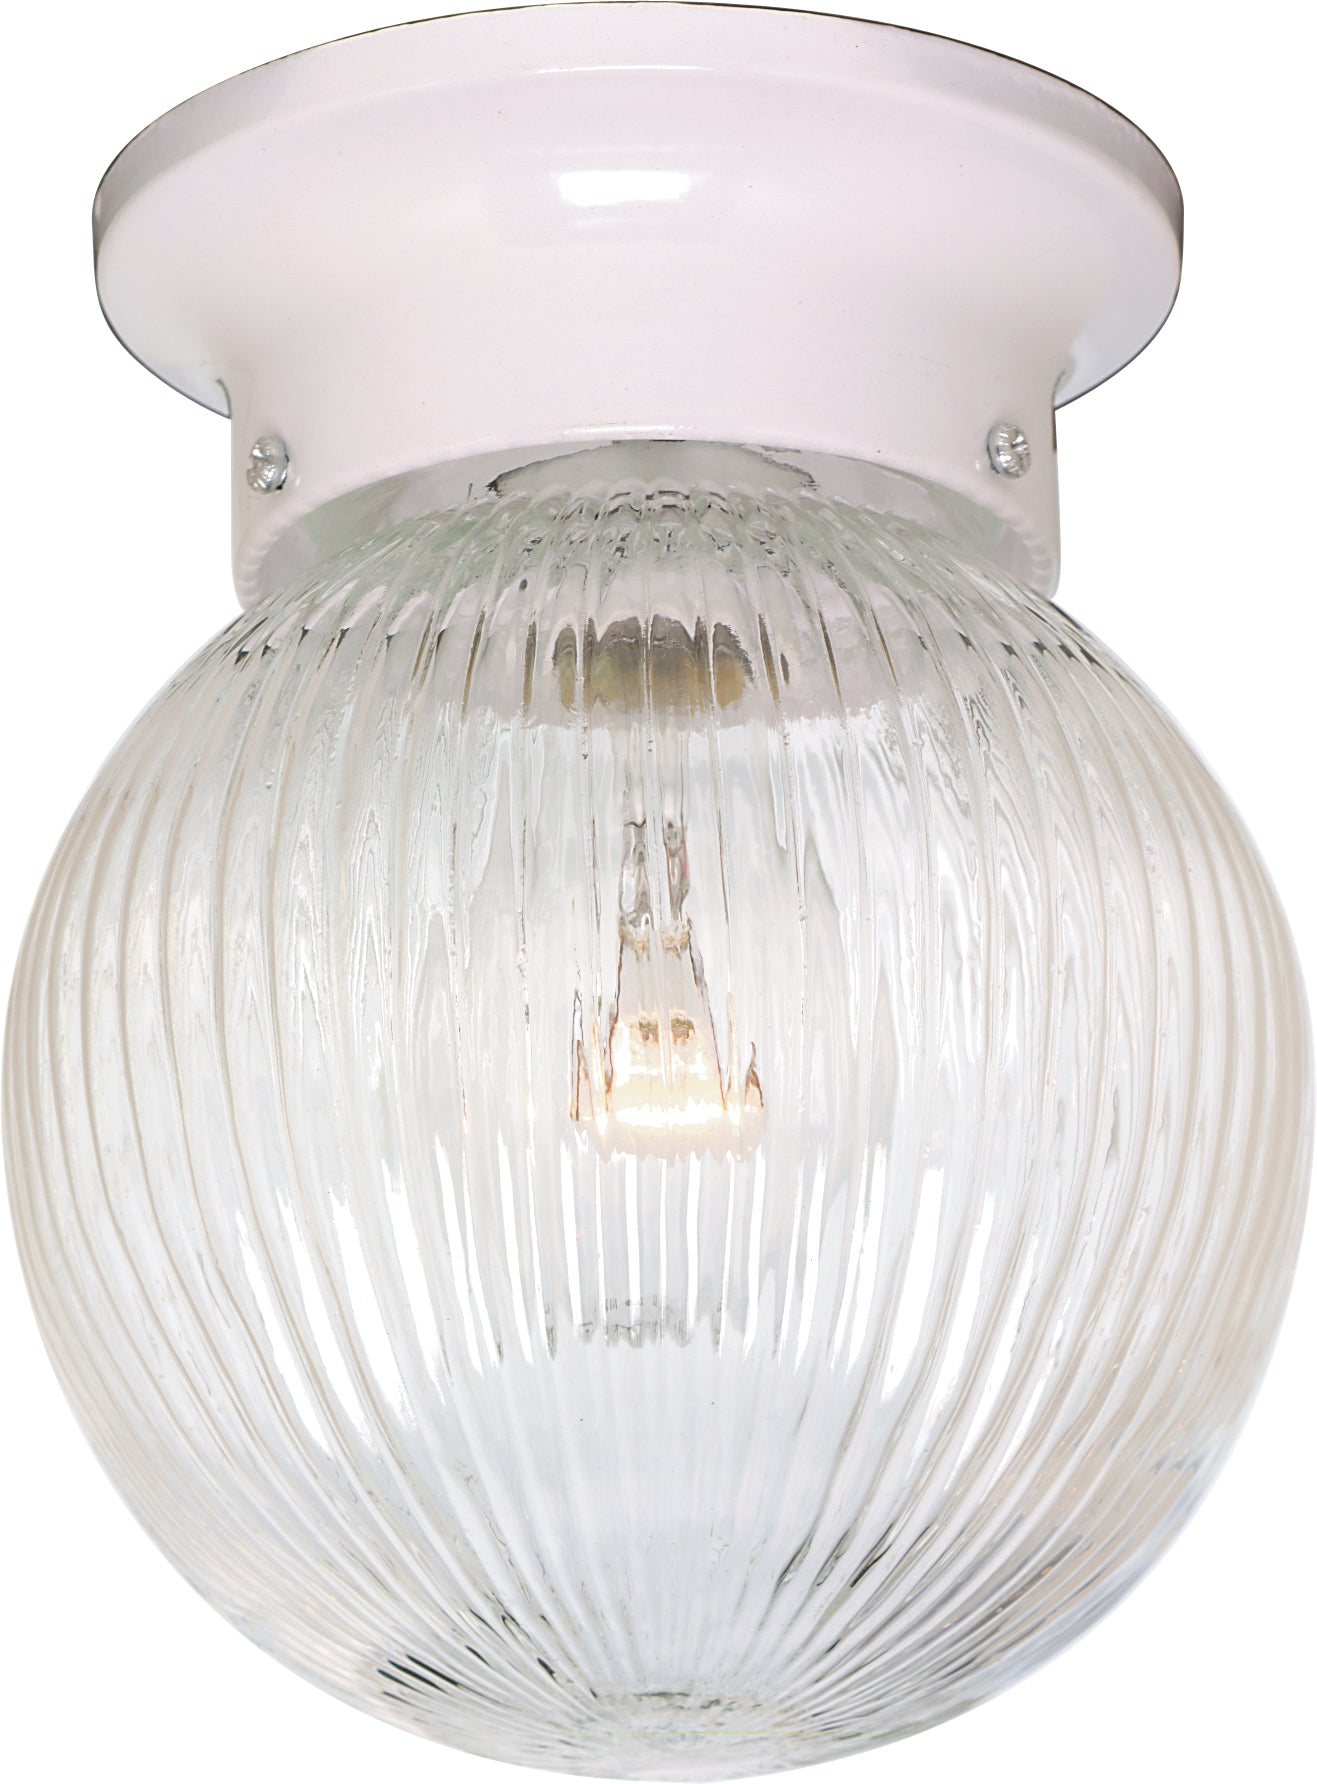 "1-Light 6"" Flush Mounted Close-to-Ceiling Light Fixture in White Finish"